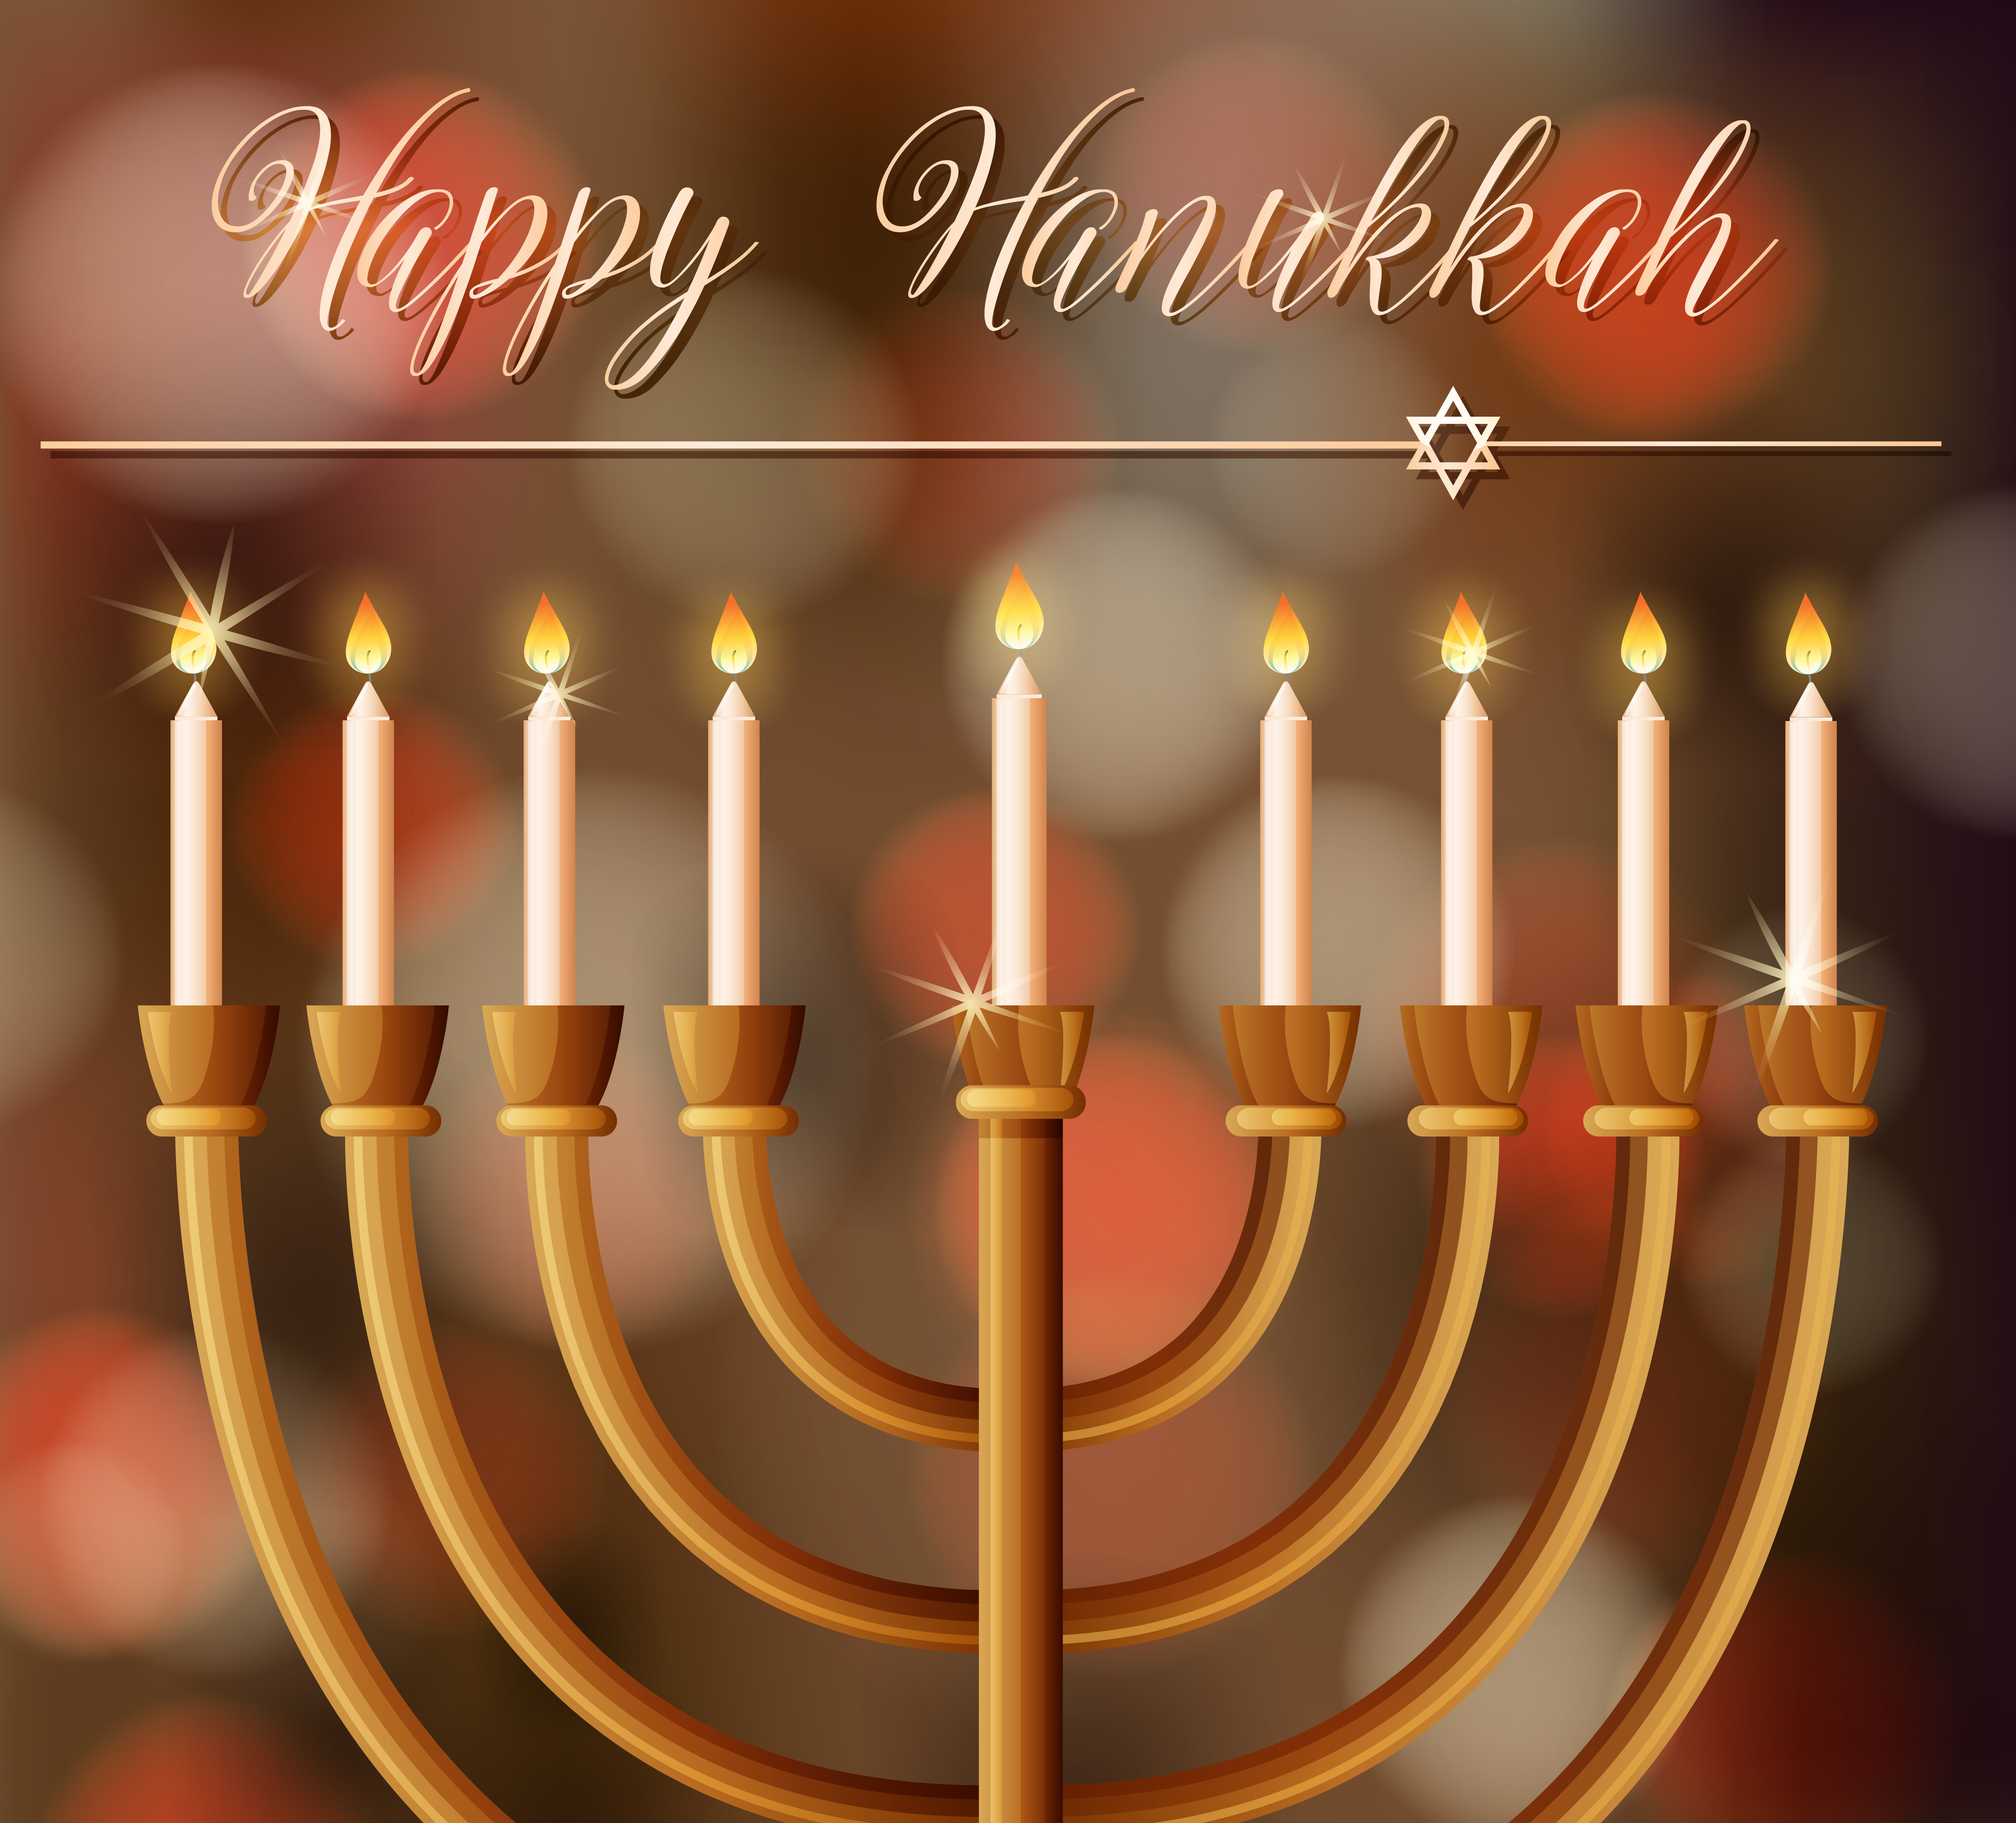 Happy Hanukkah Card Template With Candlelights